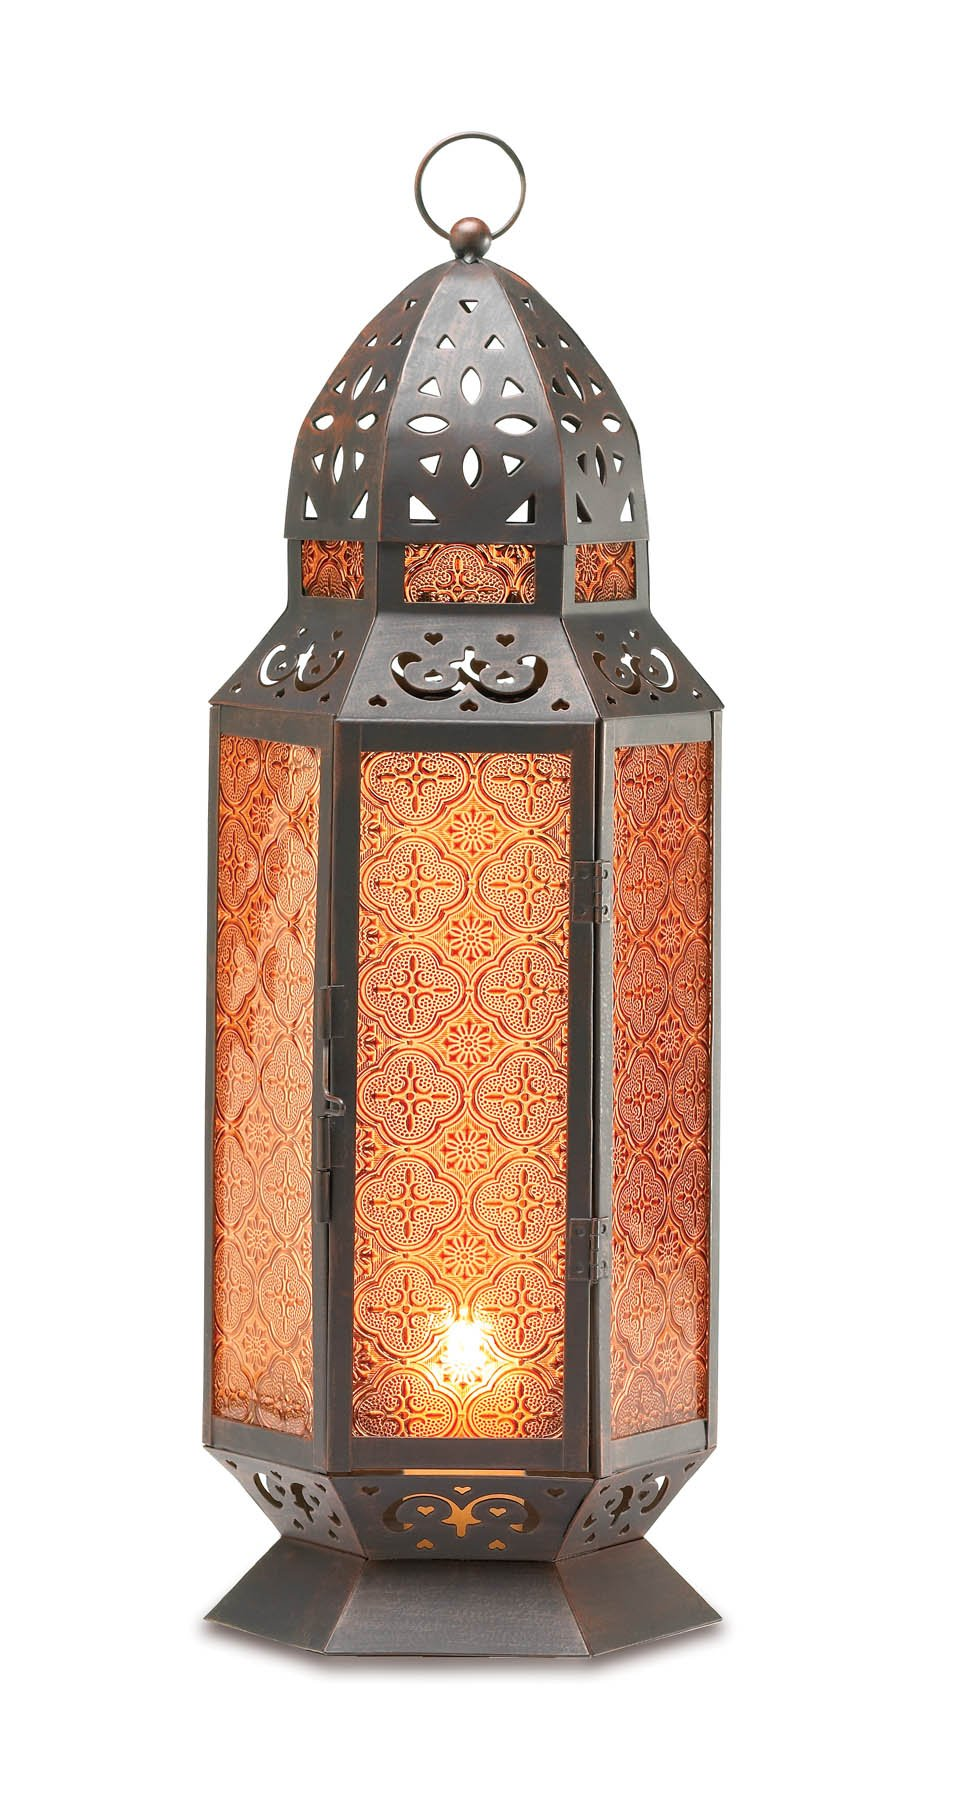 Gifts & Decor TALL MOROCCAN-STYLE CANDLE LANTERN by Gifts & Decor